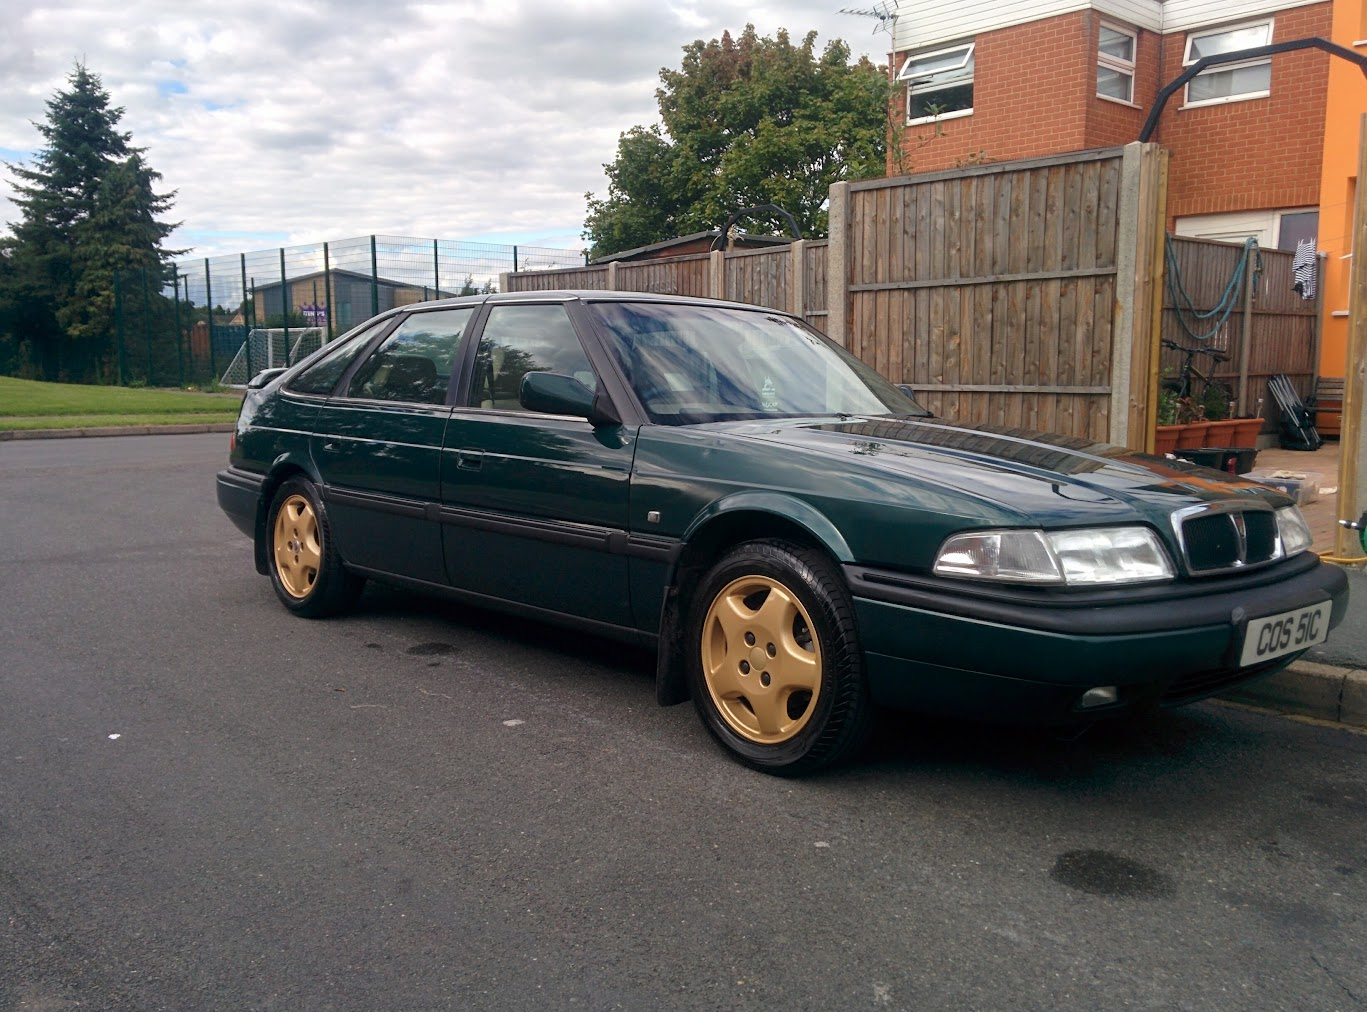 1999 Rover 820 British Racing Green Fastback For Sale Rover800 Info